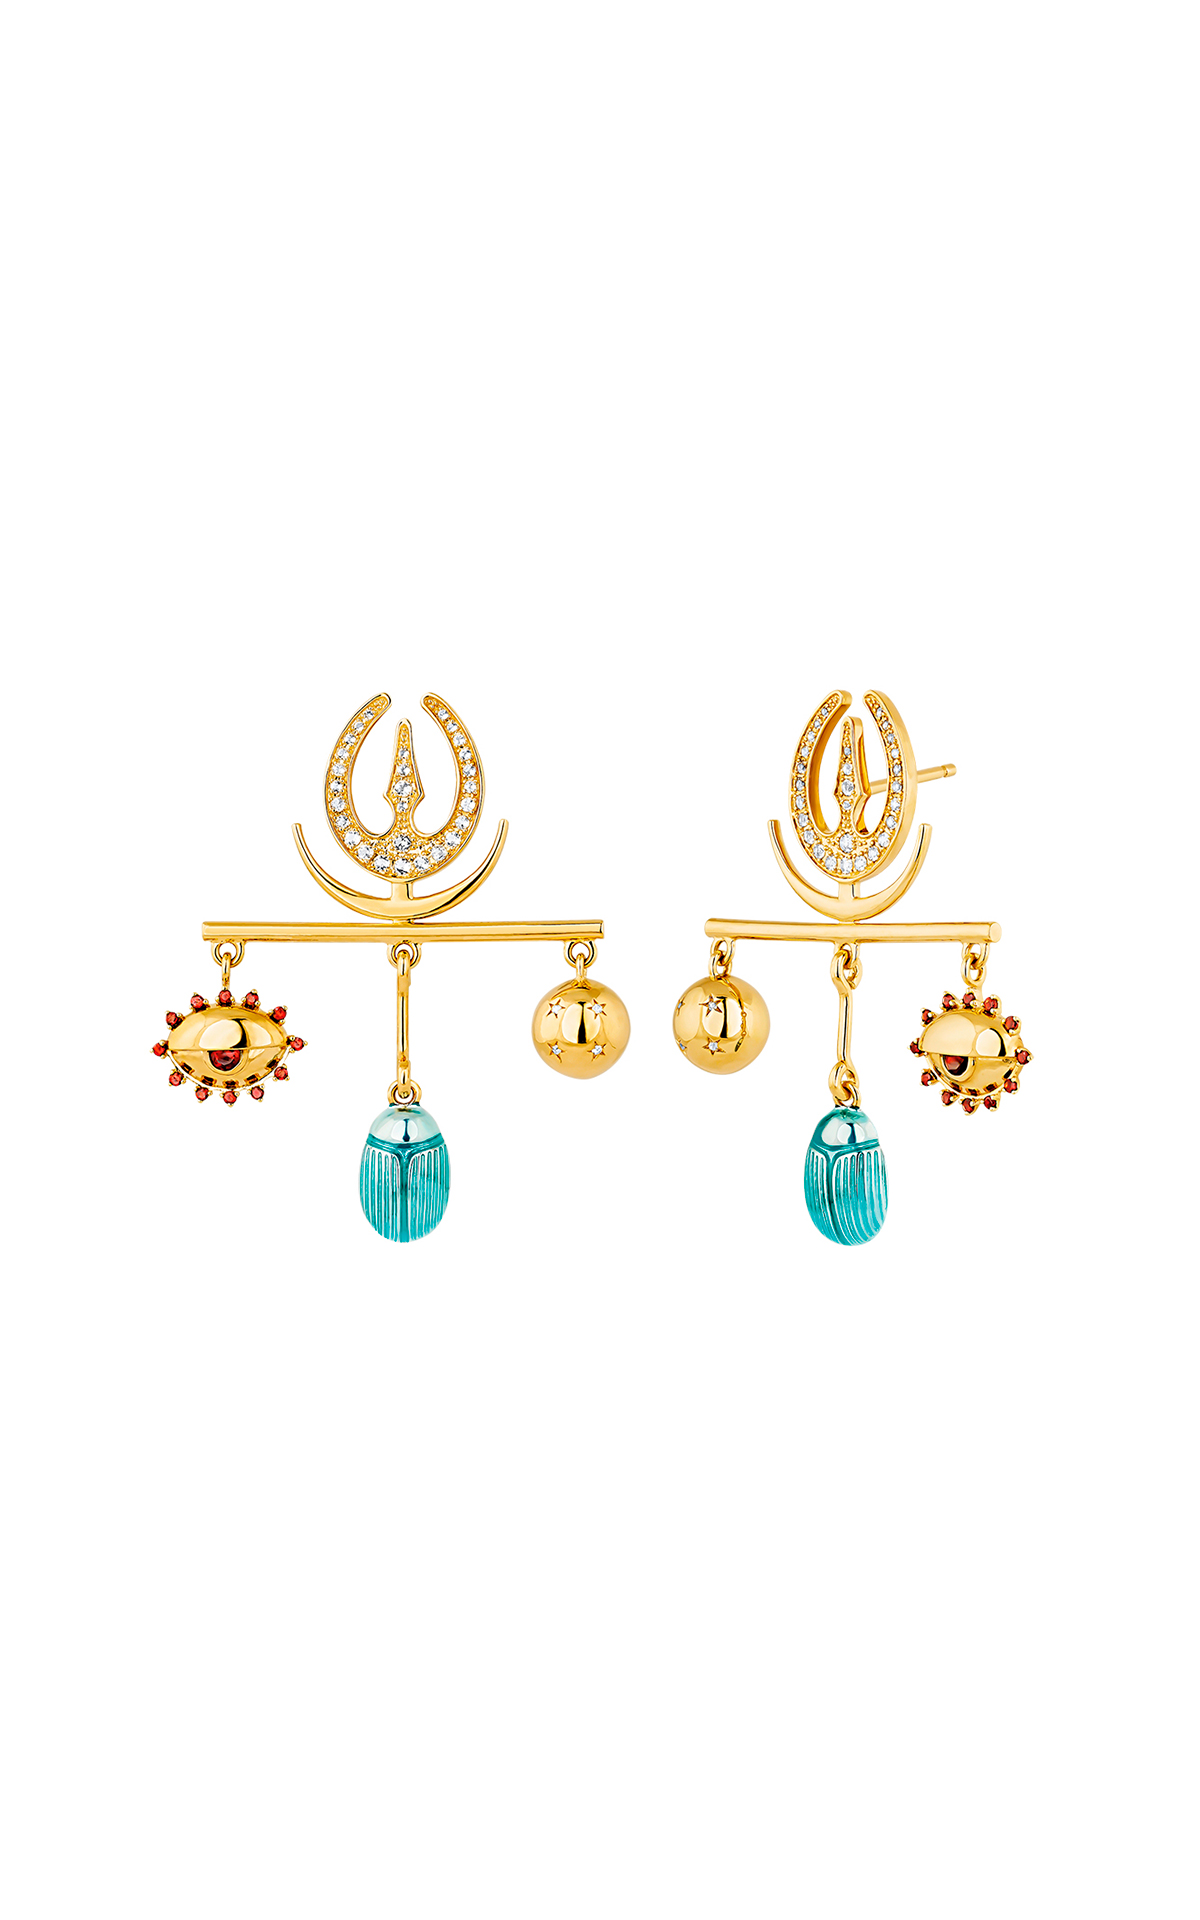 Golden earrings with blue stone Aristocrazy